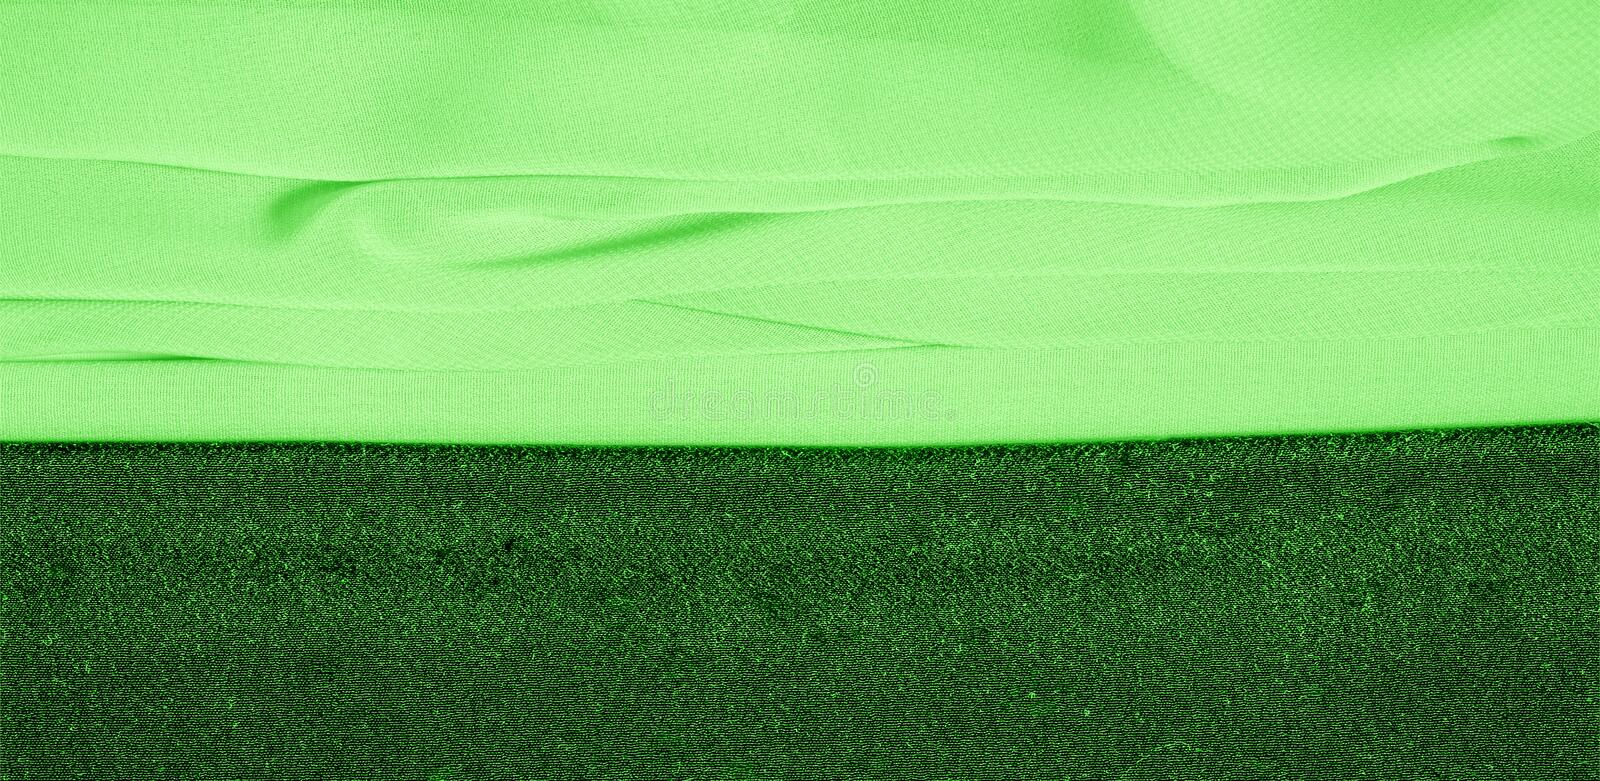 Texture background pattern. Green silk fabric with a subtle matte sheen. It is perfect for your design, accents, wallpapers,. Posters and postcards stock photography